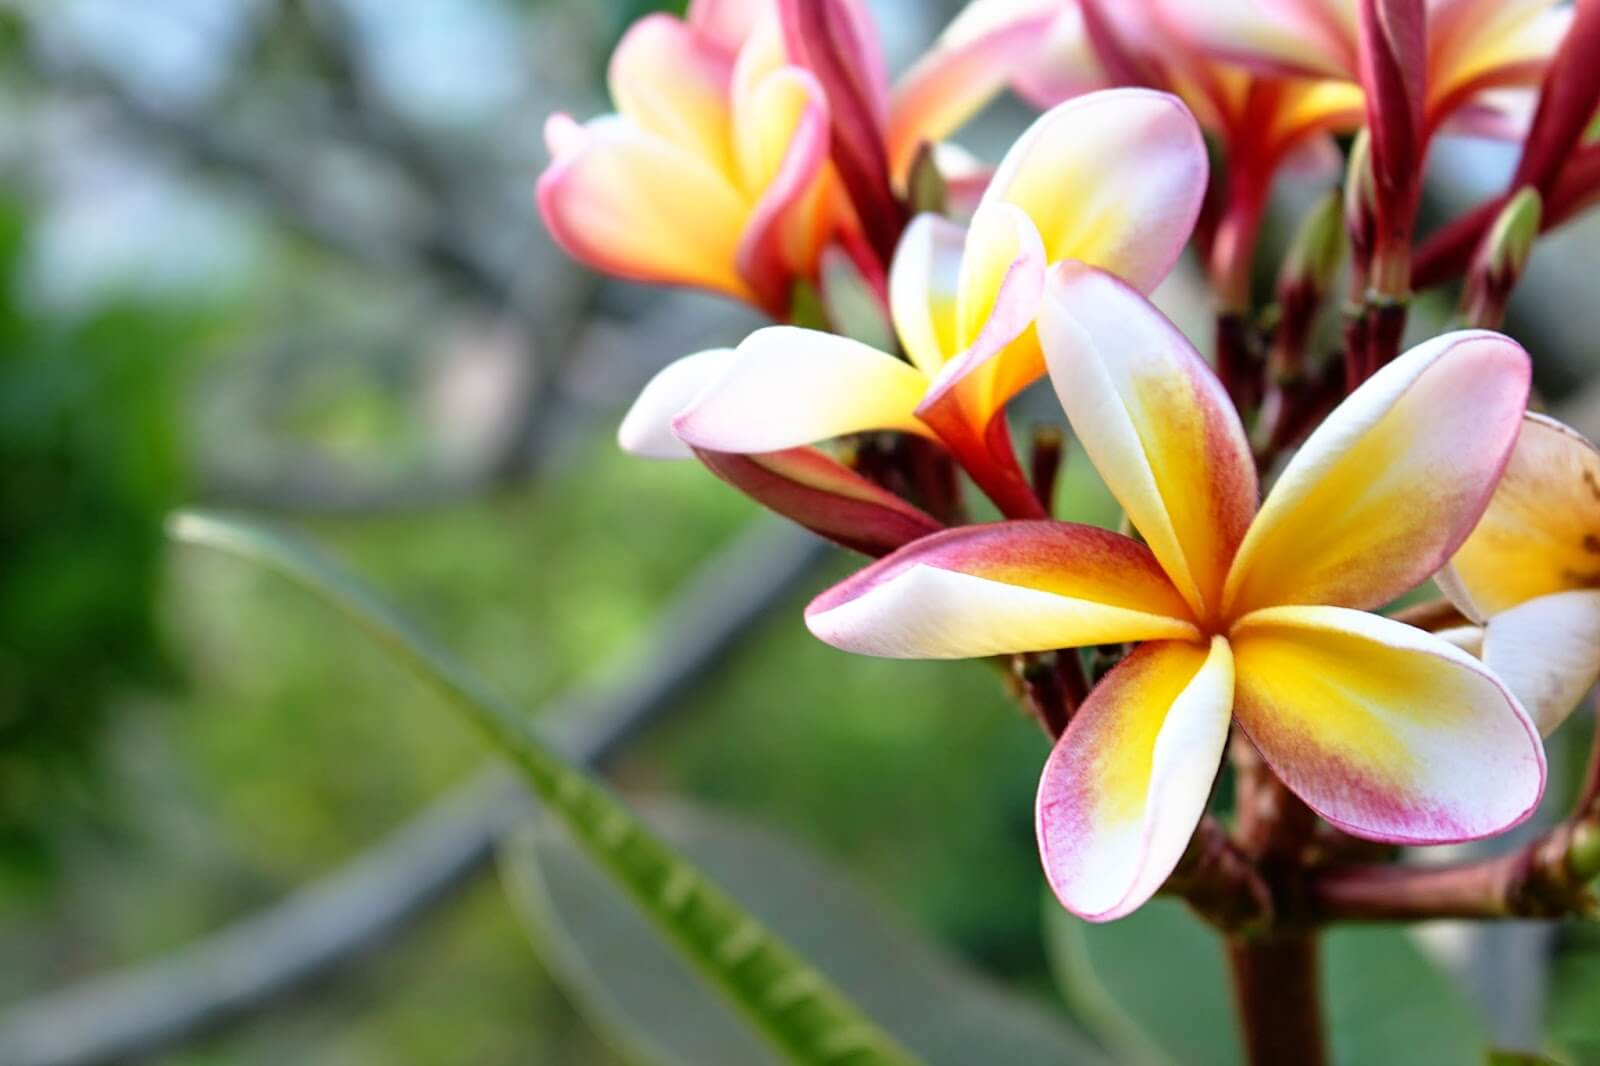 In photos: Flowers from Thailand